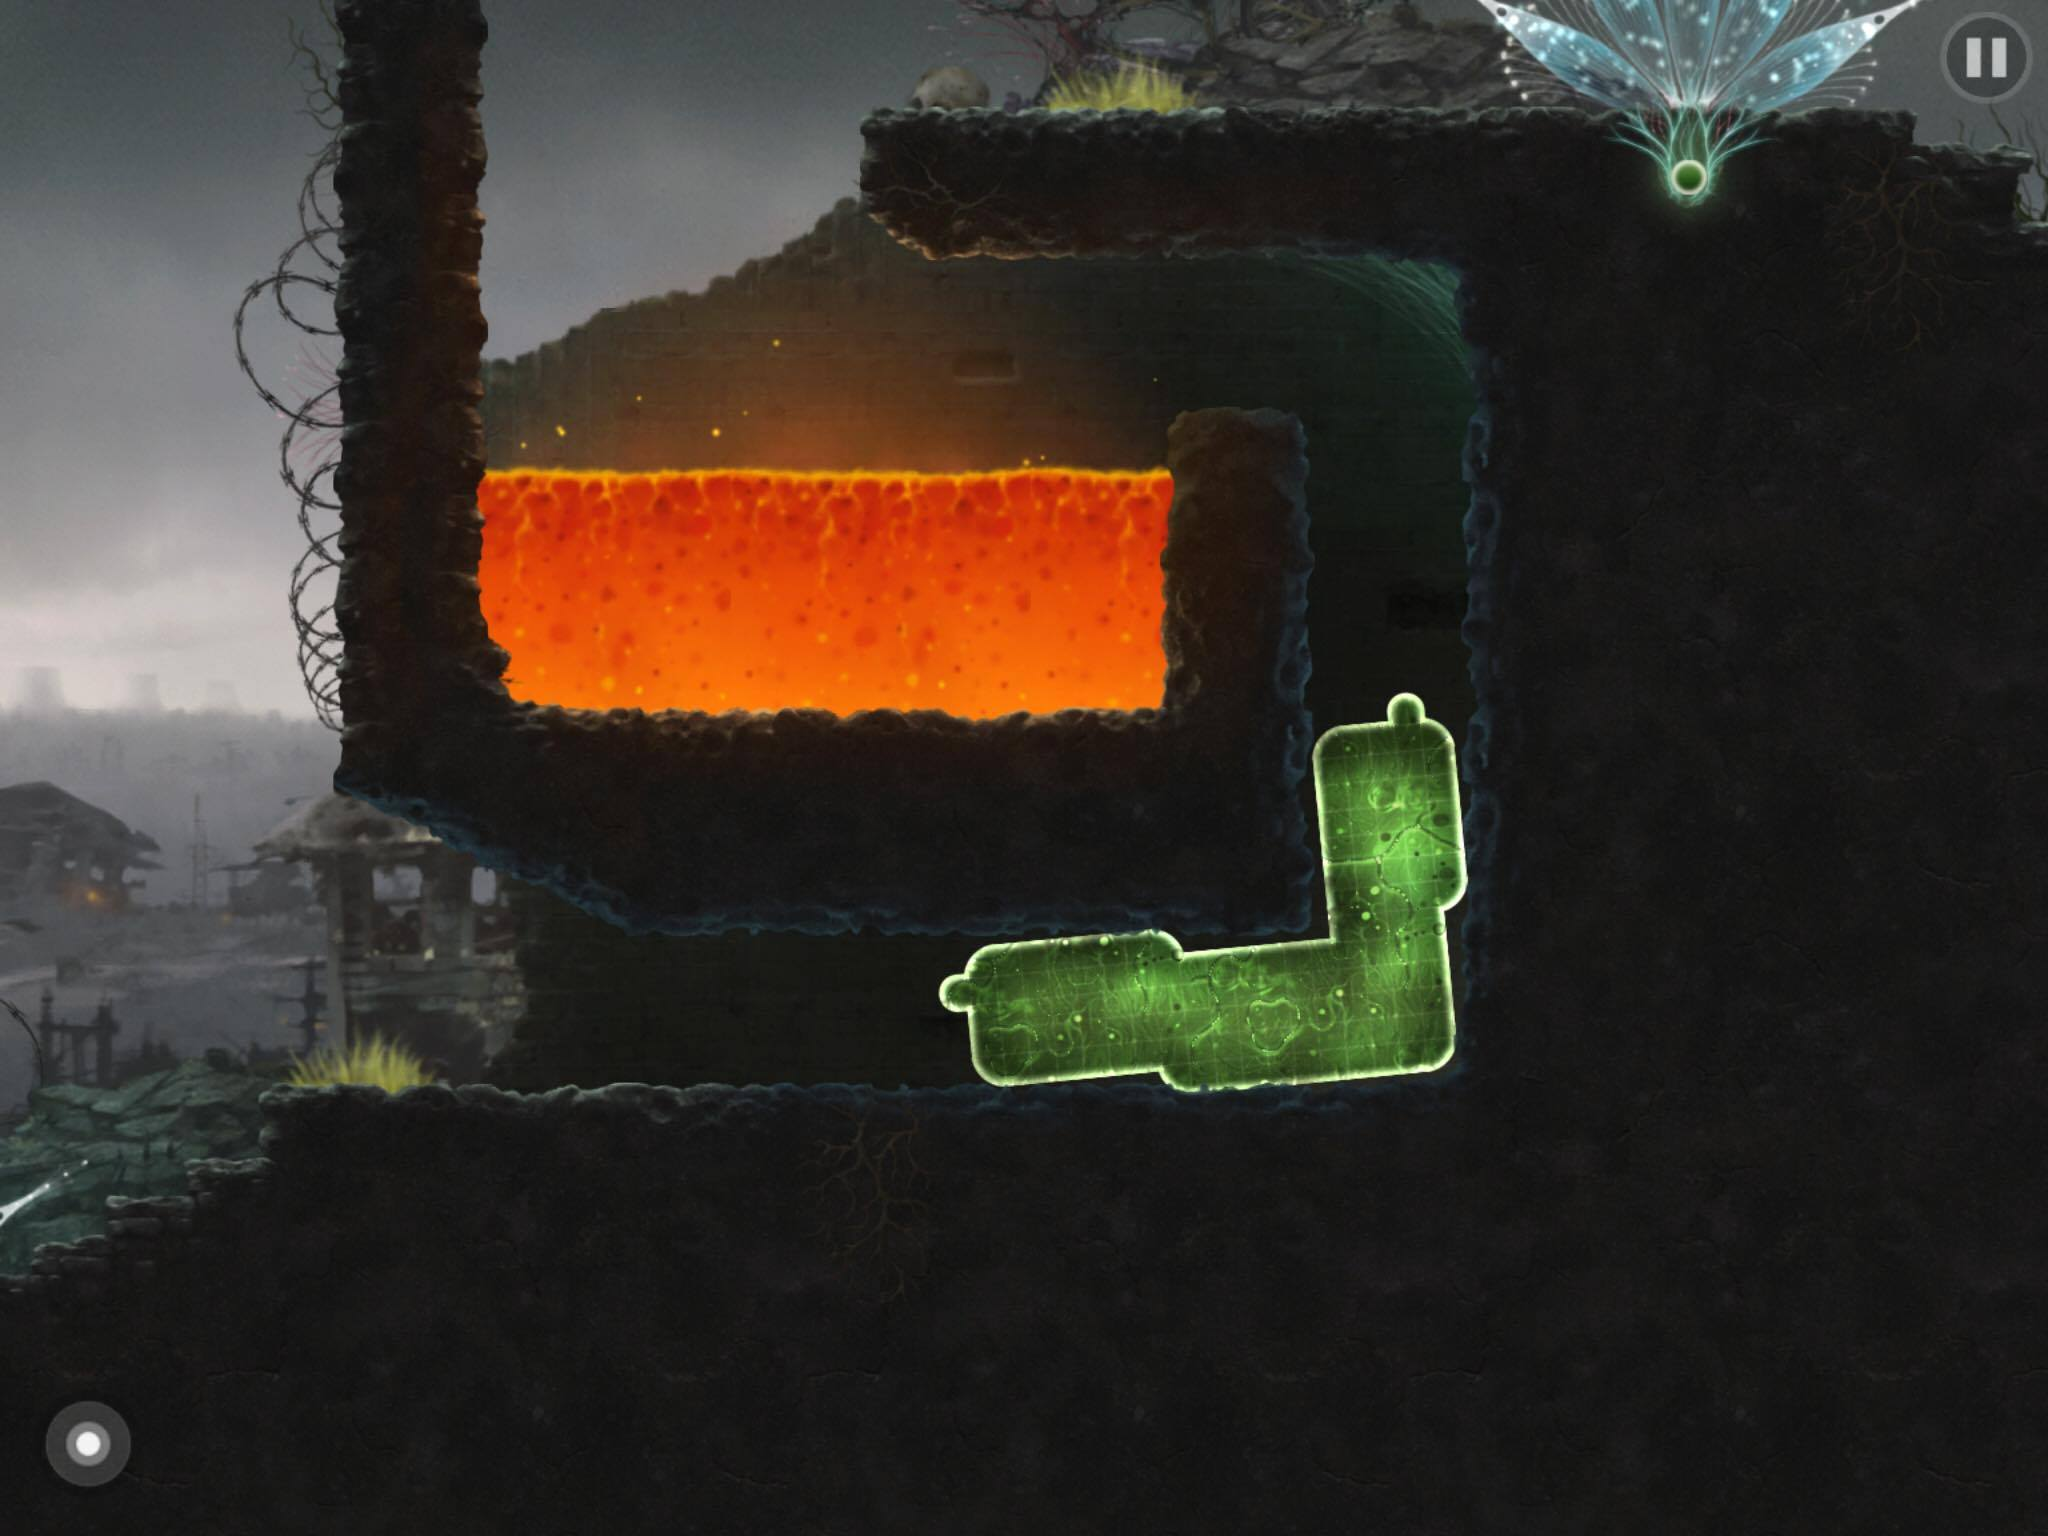 Mushroom 11 review - Just a cool idea or a genuinely great platformer?